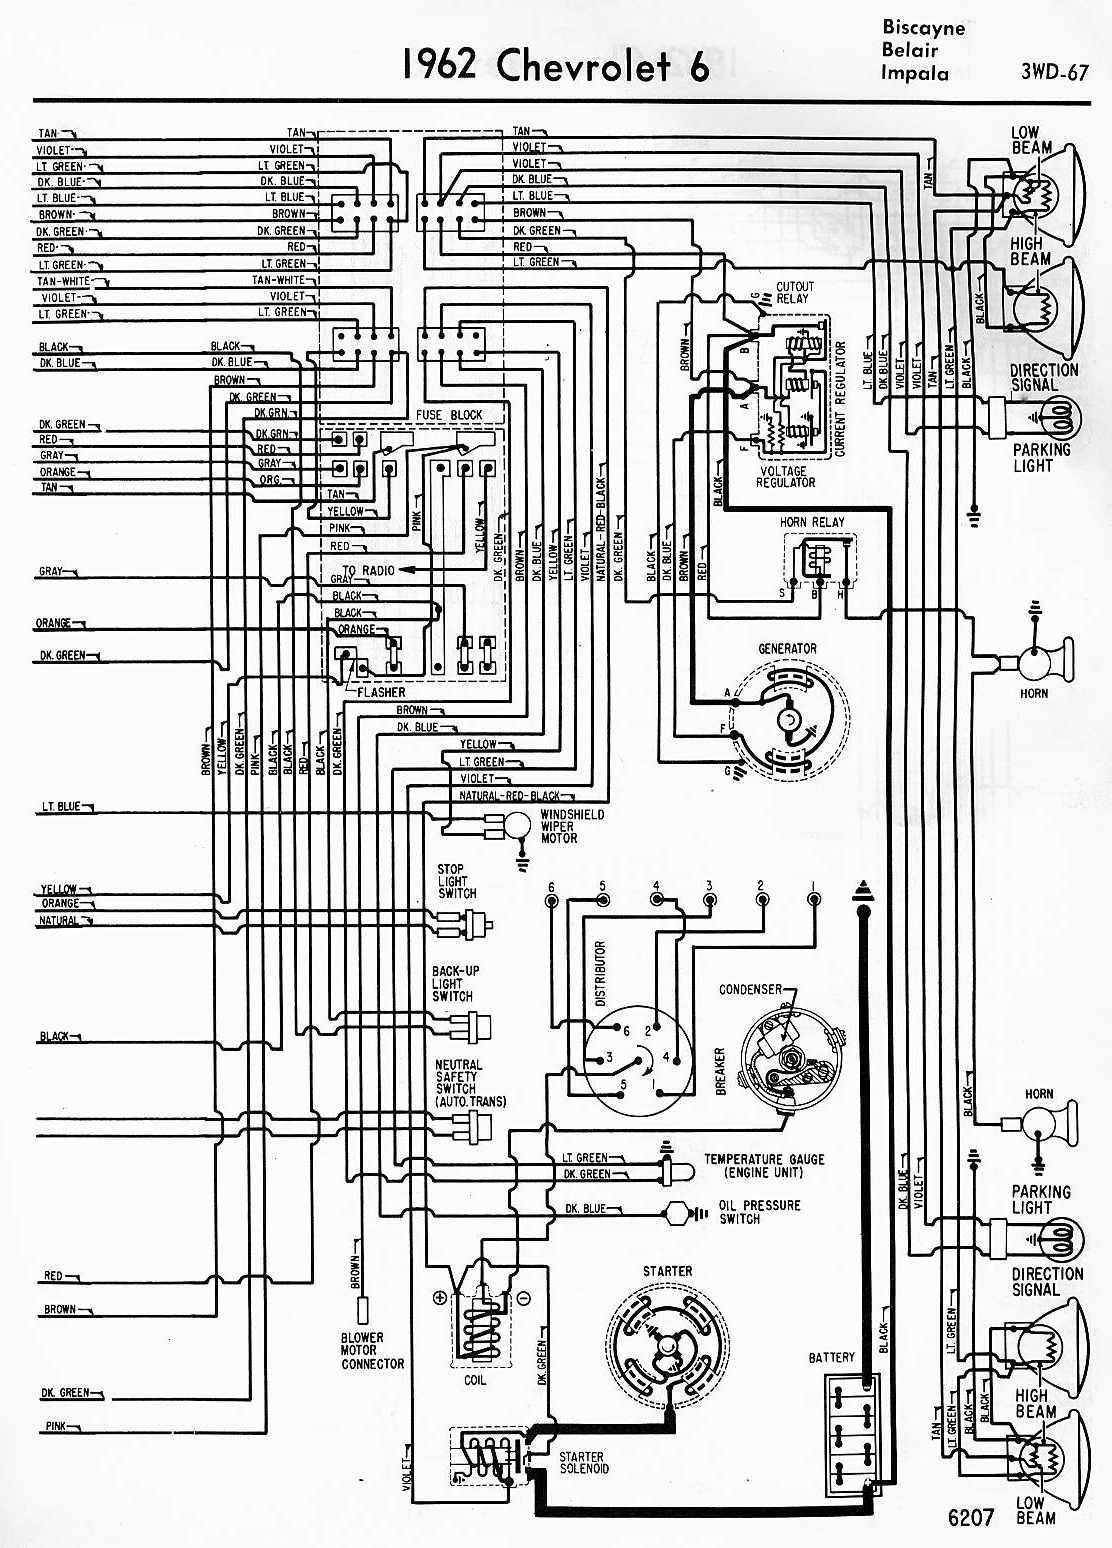 62 Impala Wiring Diagram Data 57 Chevy For Horn 1962 Schematic Name 2008 1967 Convertible